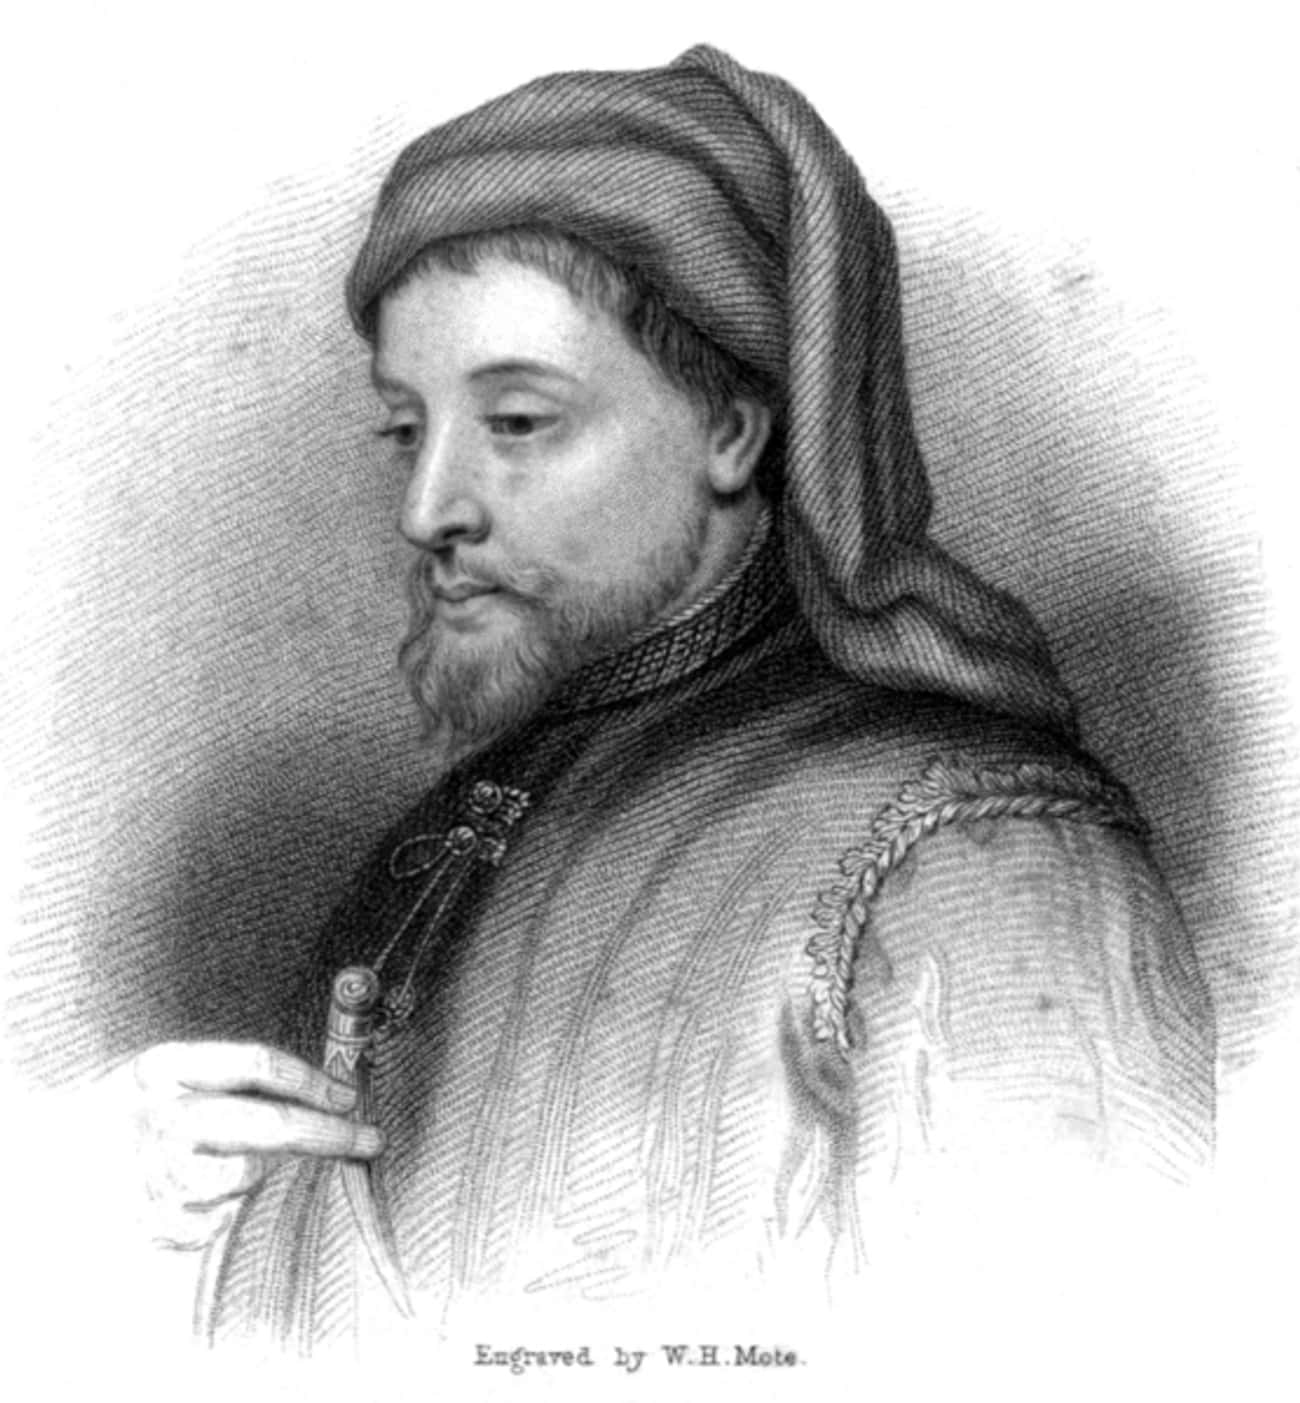 Geoffrey Chaucer is listed (or ranked) 1 on the list 12 Widely Influential Historical Figures Who Loved Fart & Dick Jokes